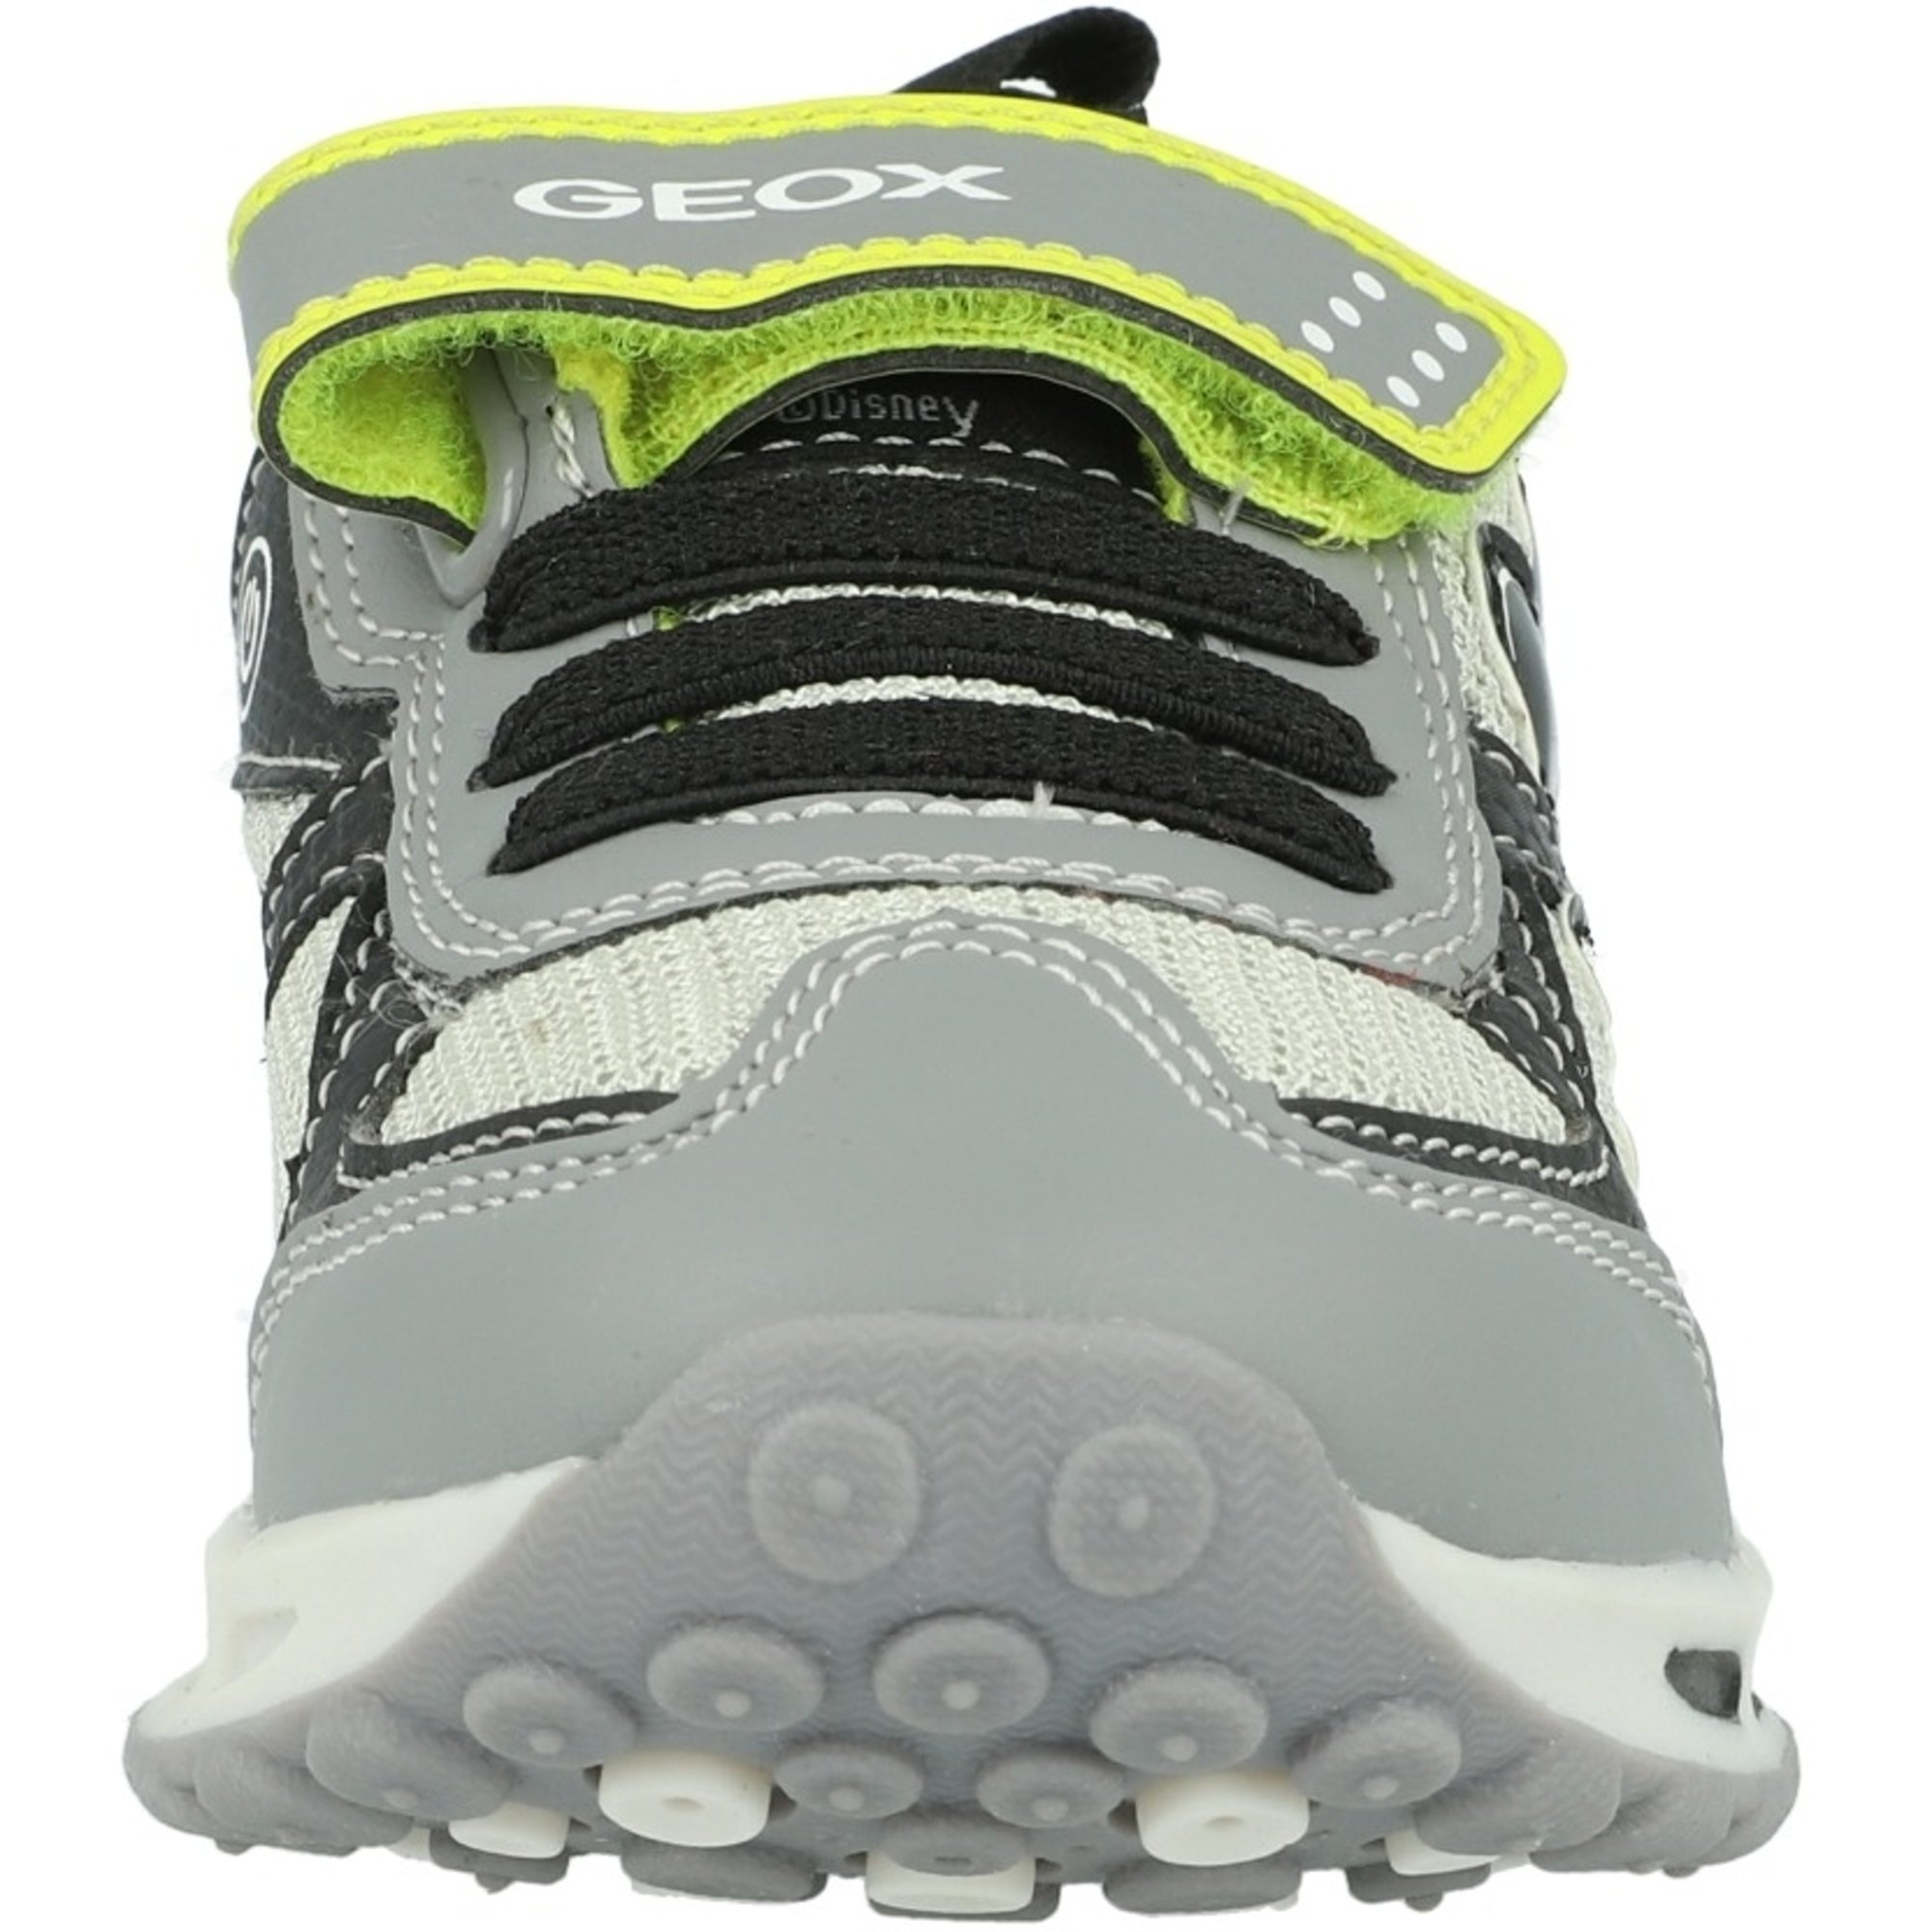 Deportista trompeta sin embargo  Geox J Shuttle A Grey/Lime Mesh - Trainers Shoes - Awesome Shoes